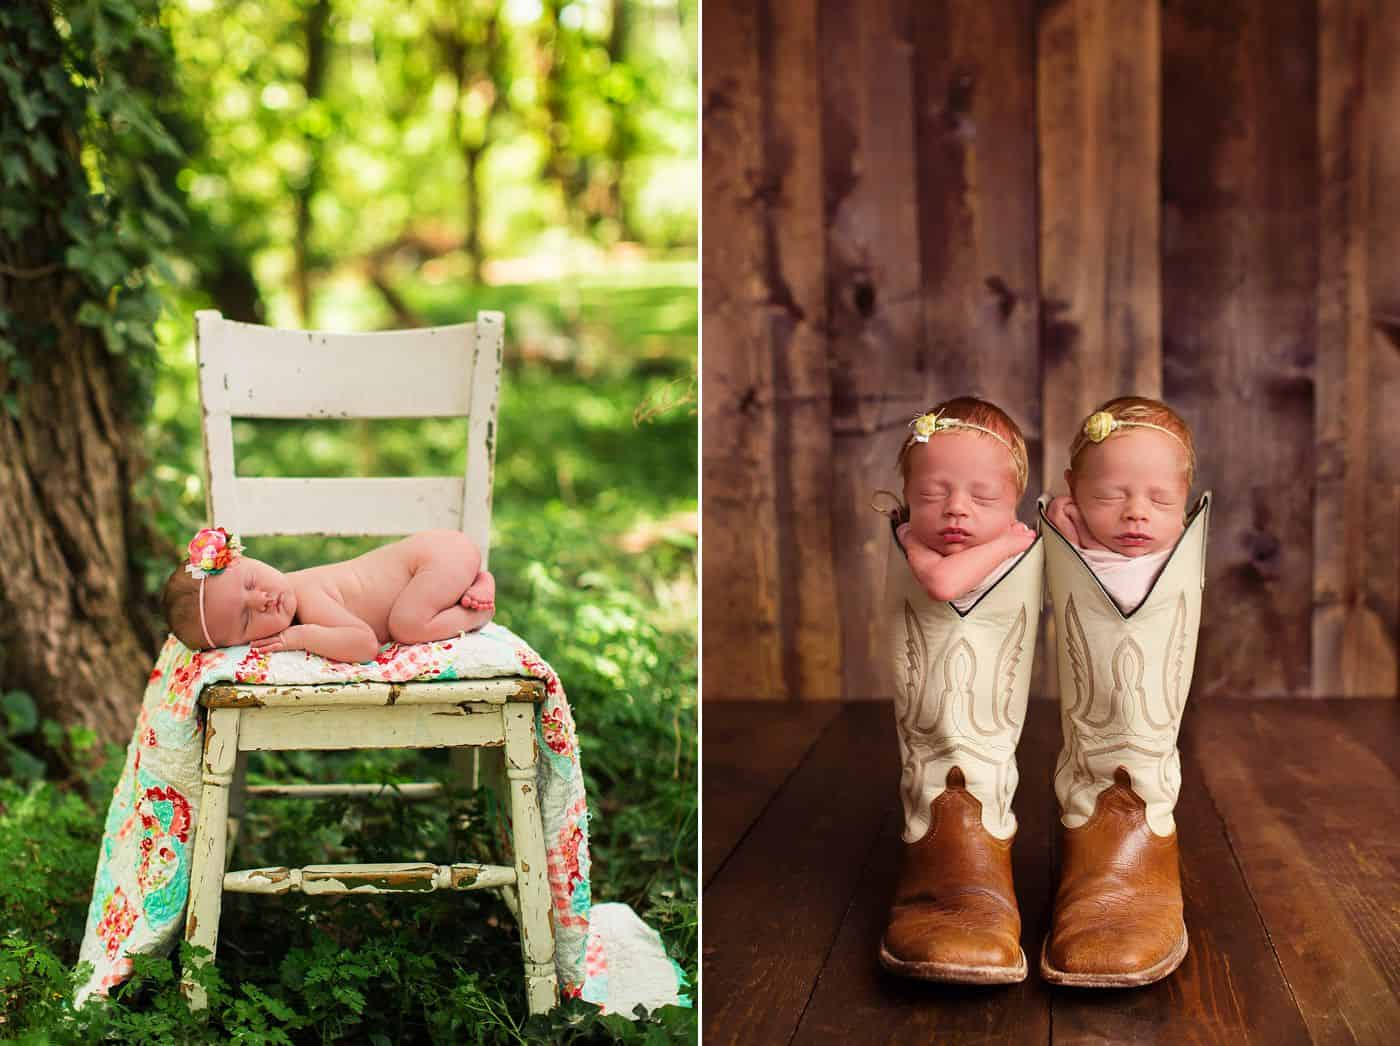 How To Make Photos That Are Classy & Cute